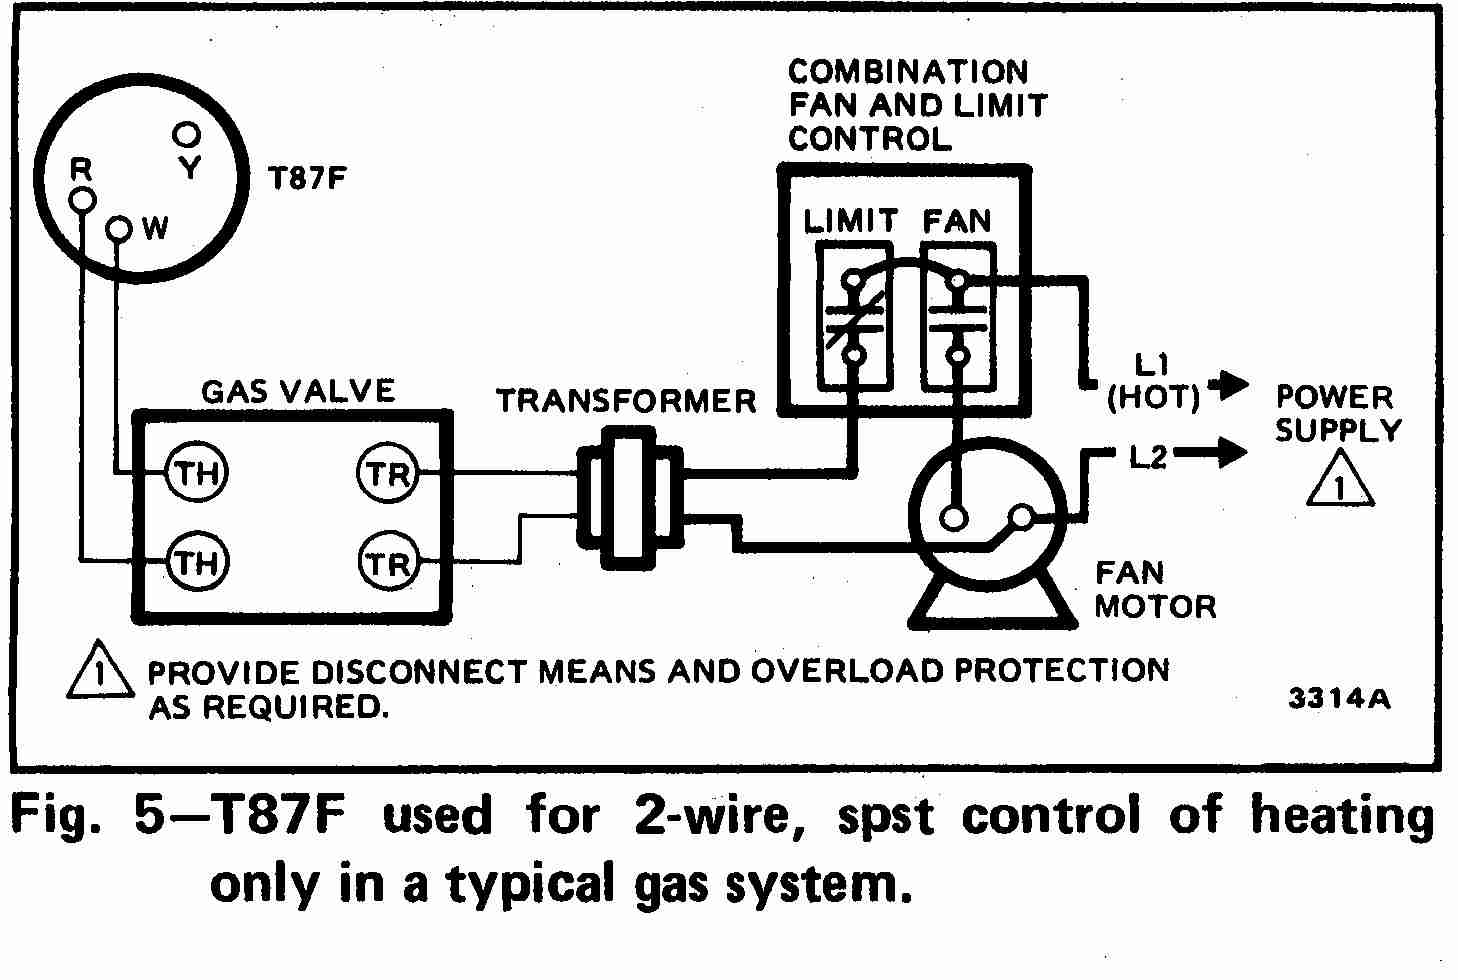 Guide To Wiring Connections For Room Thermostats York Rtu Schematic Honeywell T87f Thermostat Diagram 2 Wire Spst Control Of Heating Only In